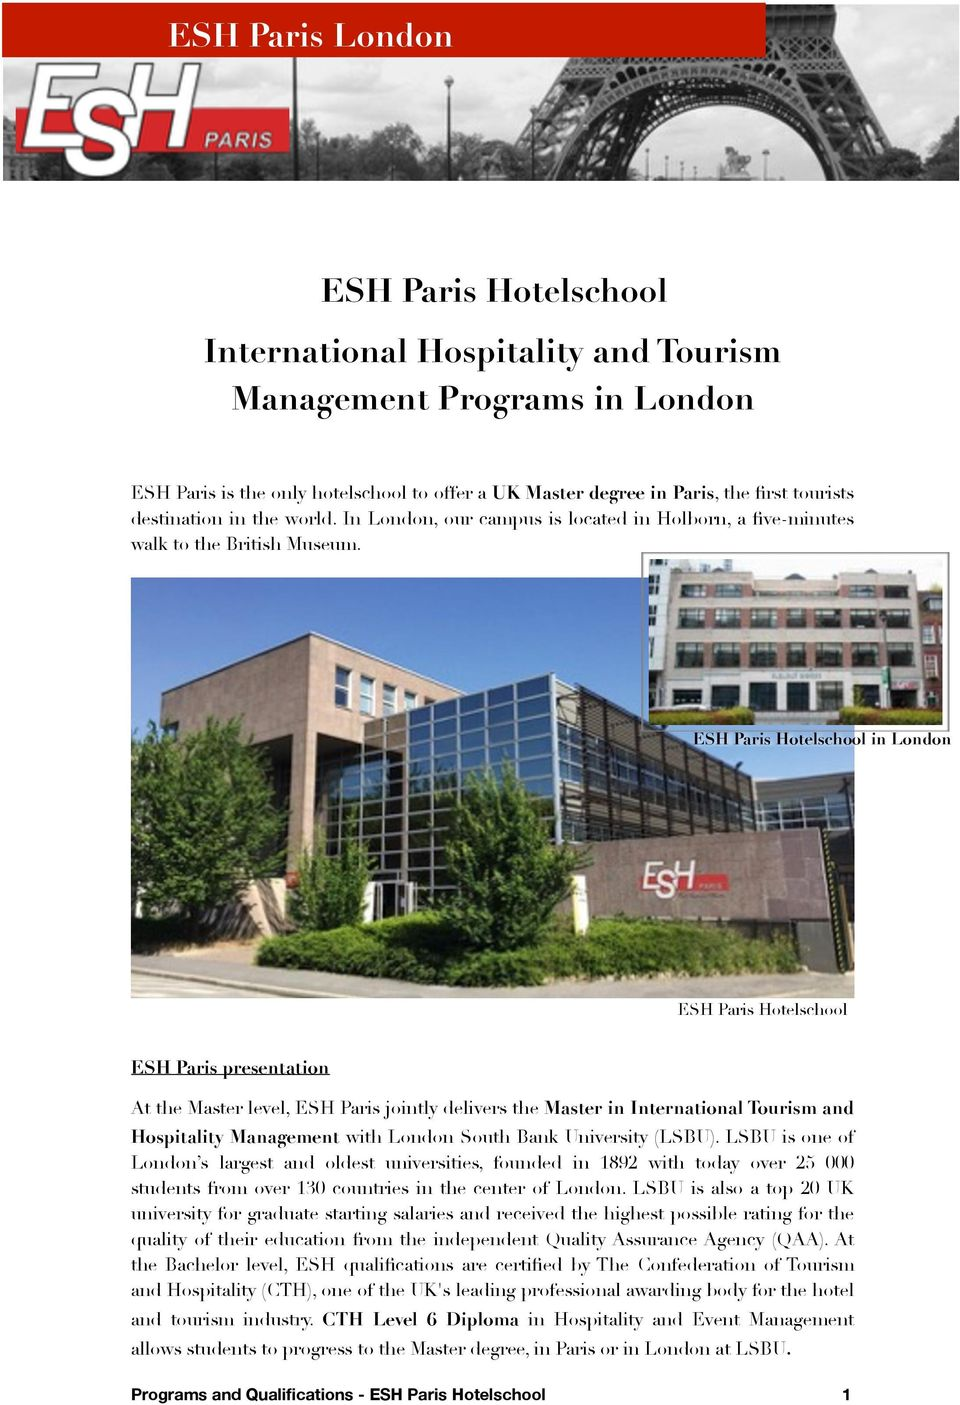 ESH Paris Hotelschool in London ESH Paris Hotelschool ESH Paris presentation At the Master level, ESH Paris jointly delivers the Master in International Tourism and Hospitality Management with London